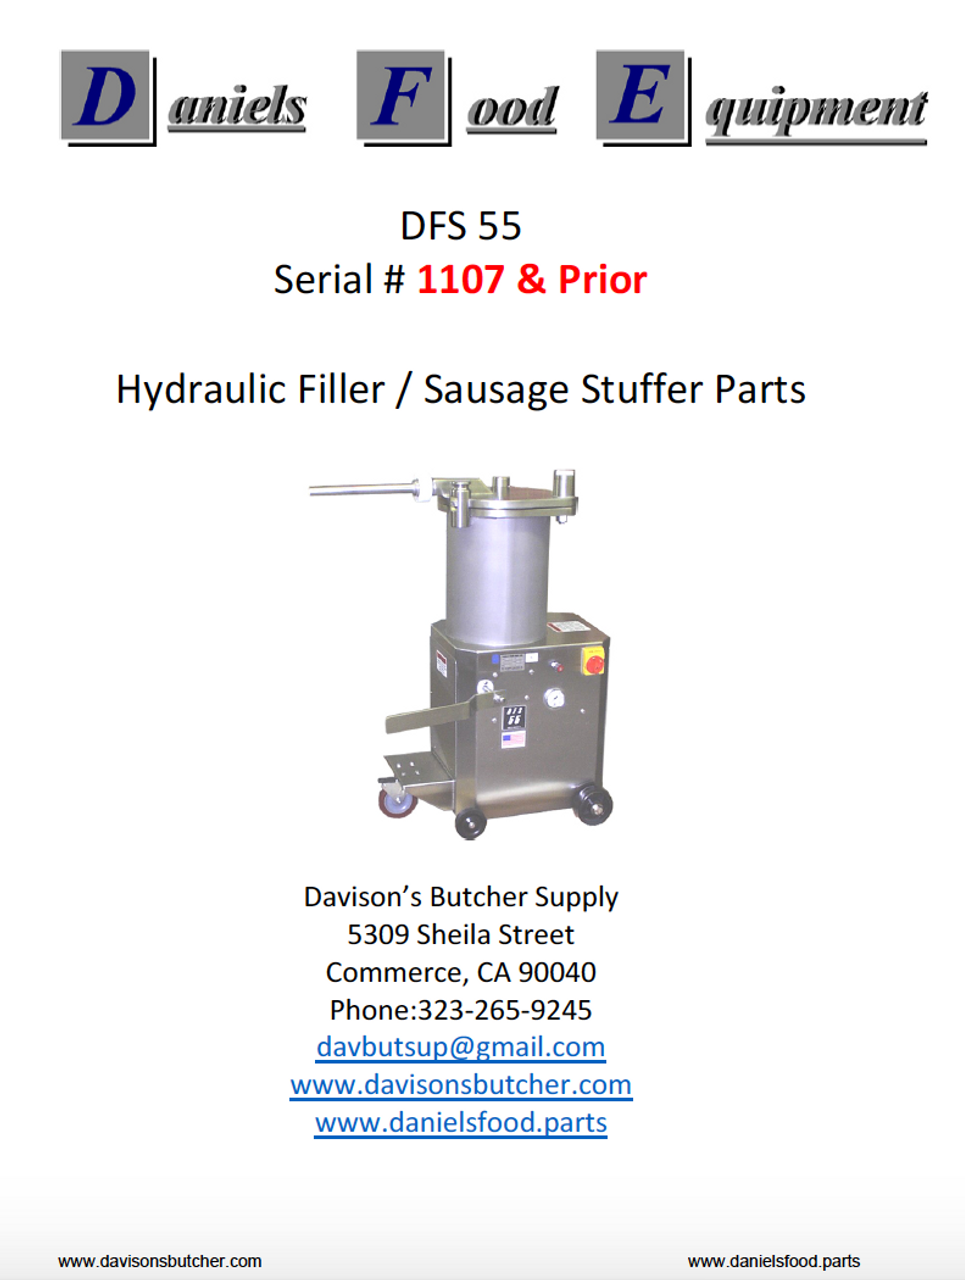 Daniels Food DFS 55 Sausage Stuffer / Filler  Parts - Parts List - Serial #1107 & Prior